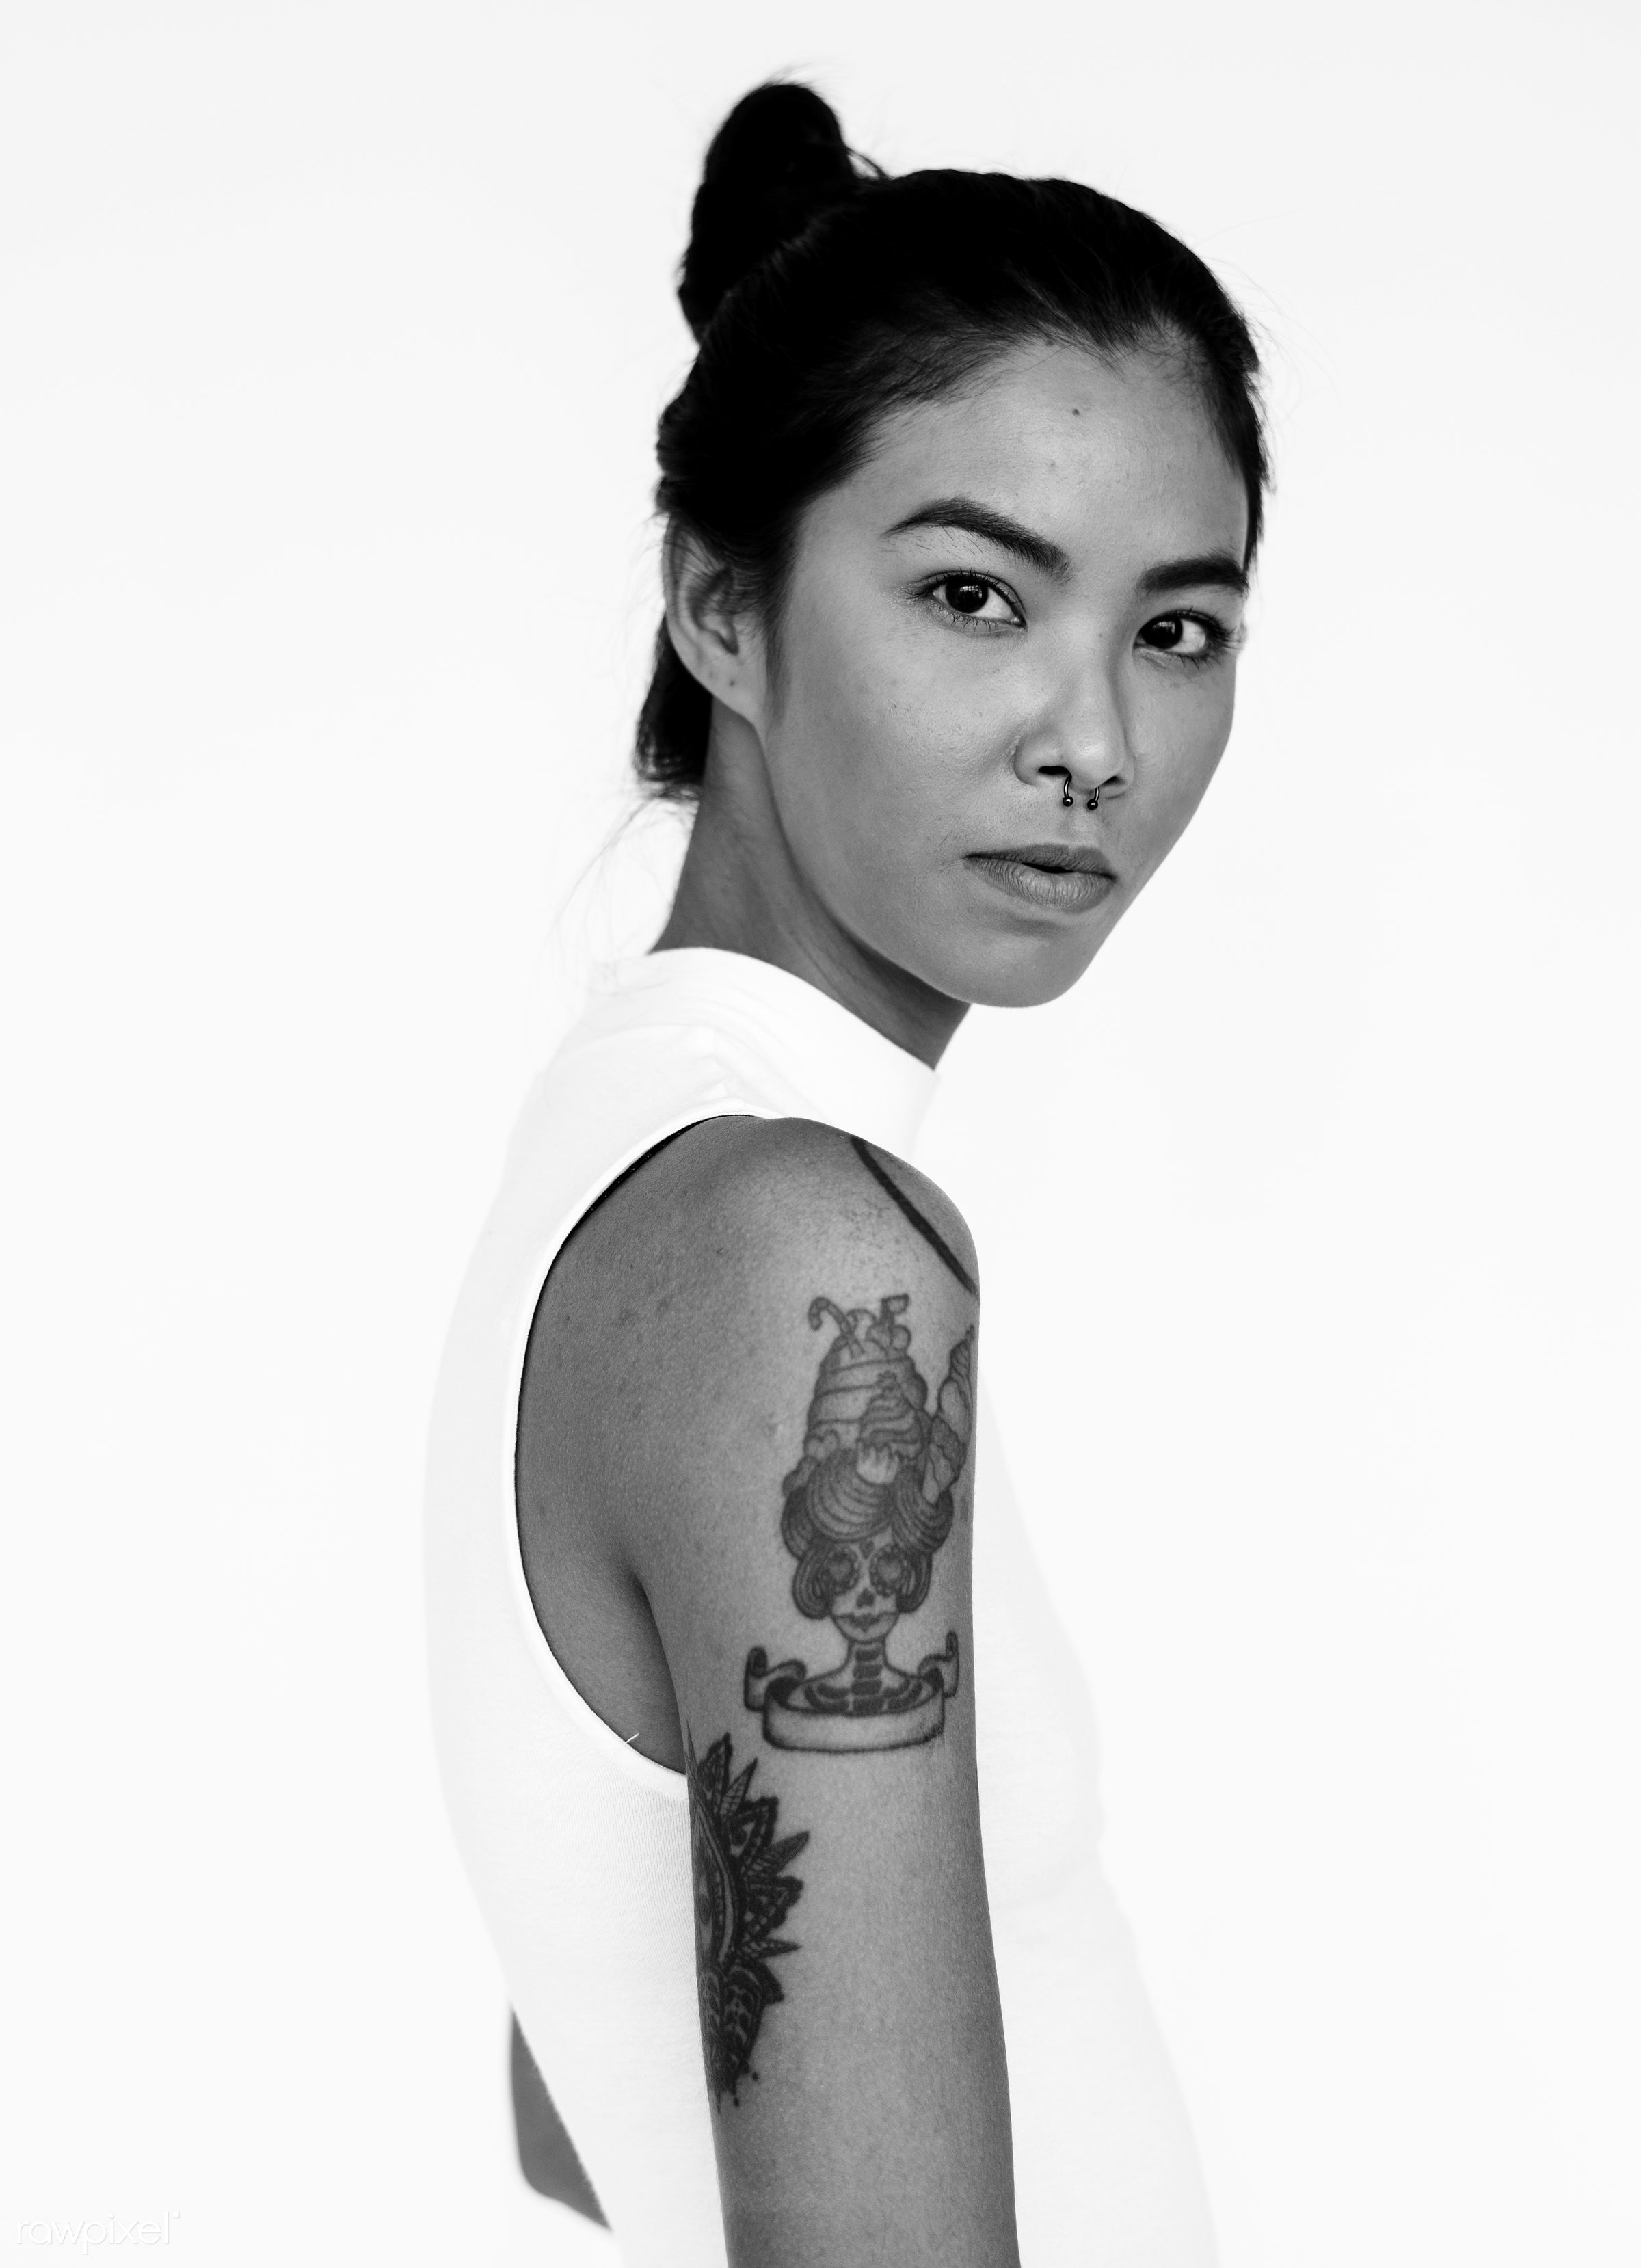 studio, expression, person, model, isolated on white, race, people, girl, style, woman, casual, lifestyle, tattoo, isolated...